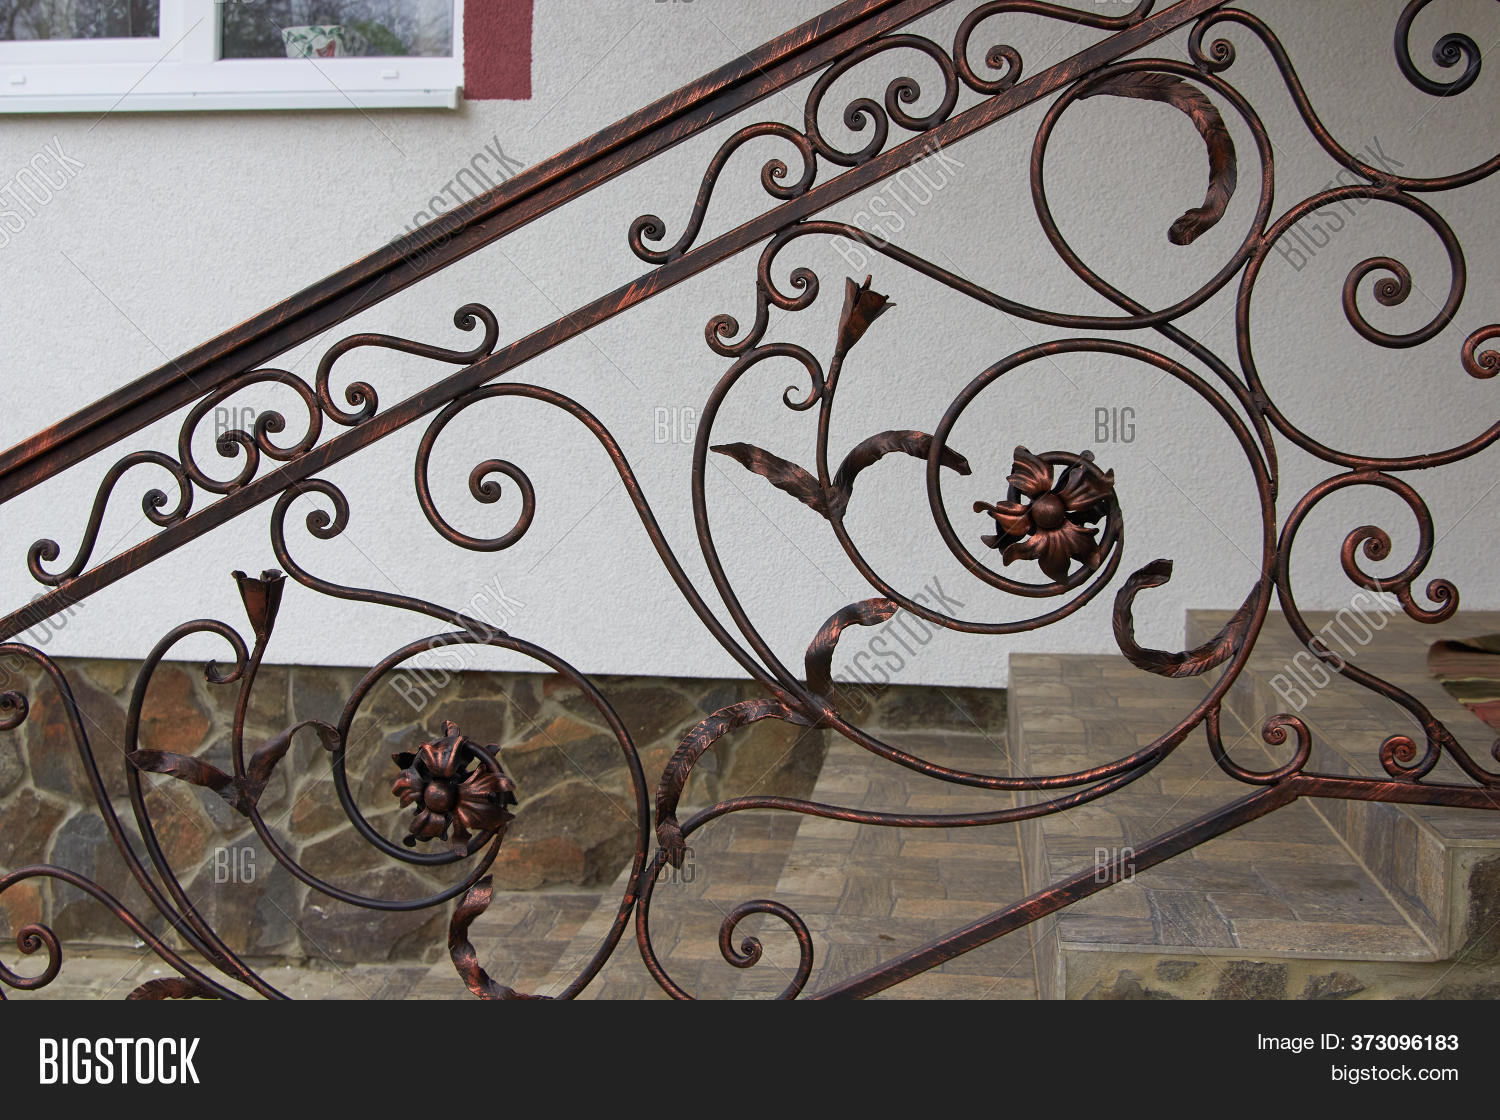 Stairs Wrought Iron Image Photo Free Trial Bigstock